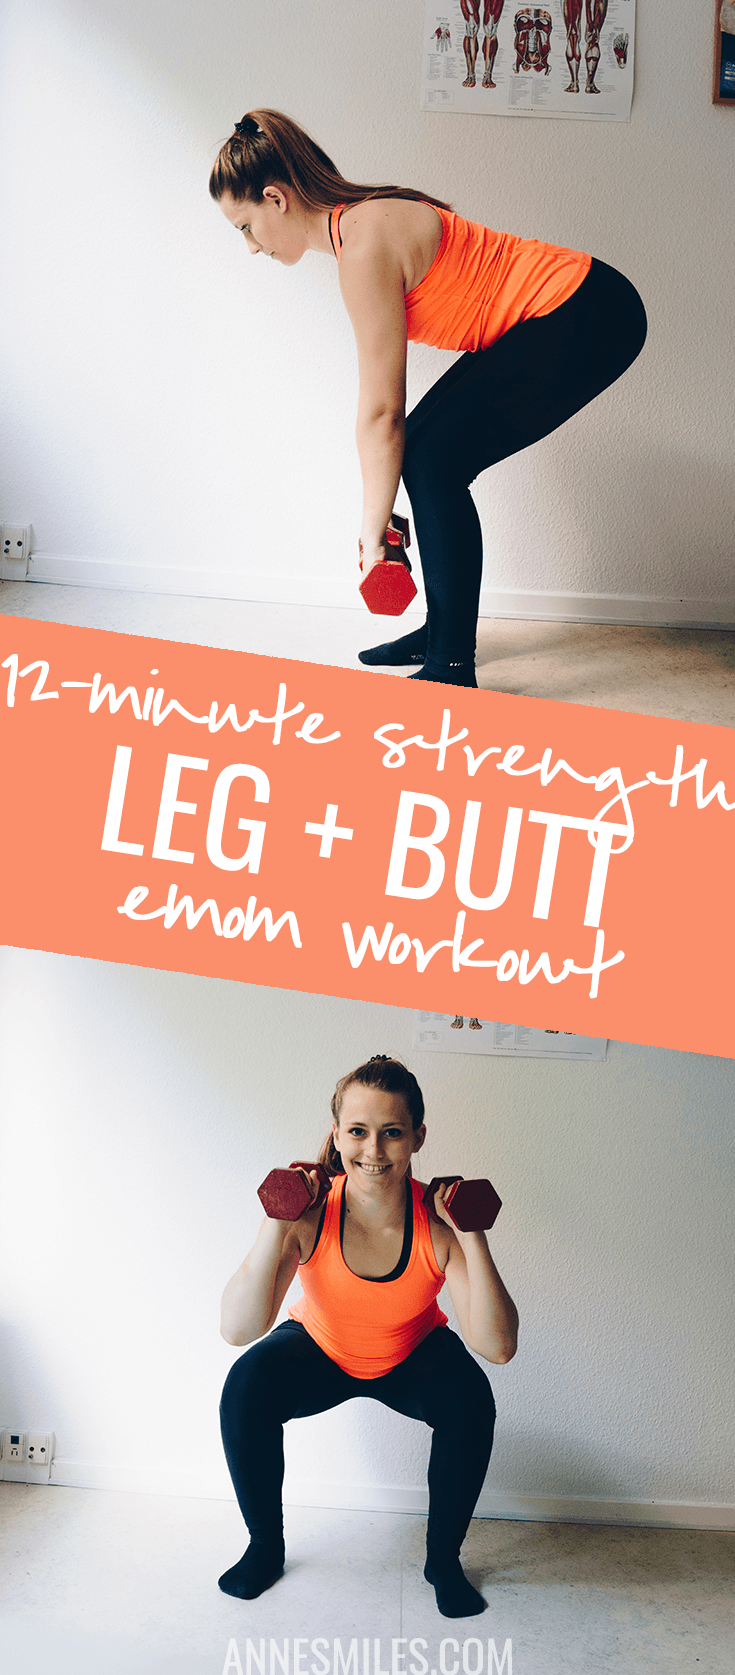 WTF is EMOM? This strong lower body workout shows you how to uses this system to create a great workout!